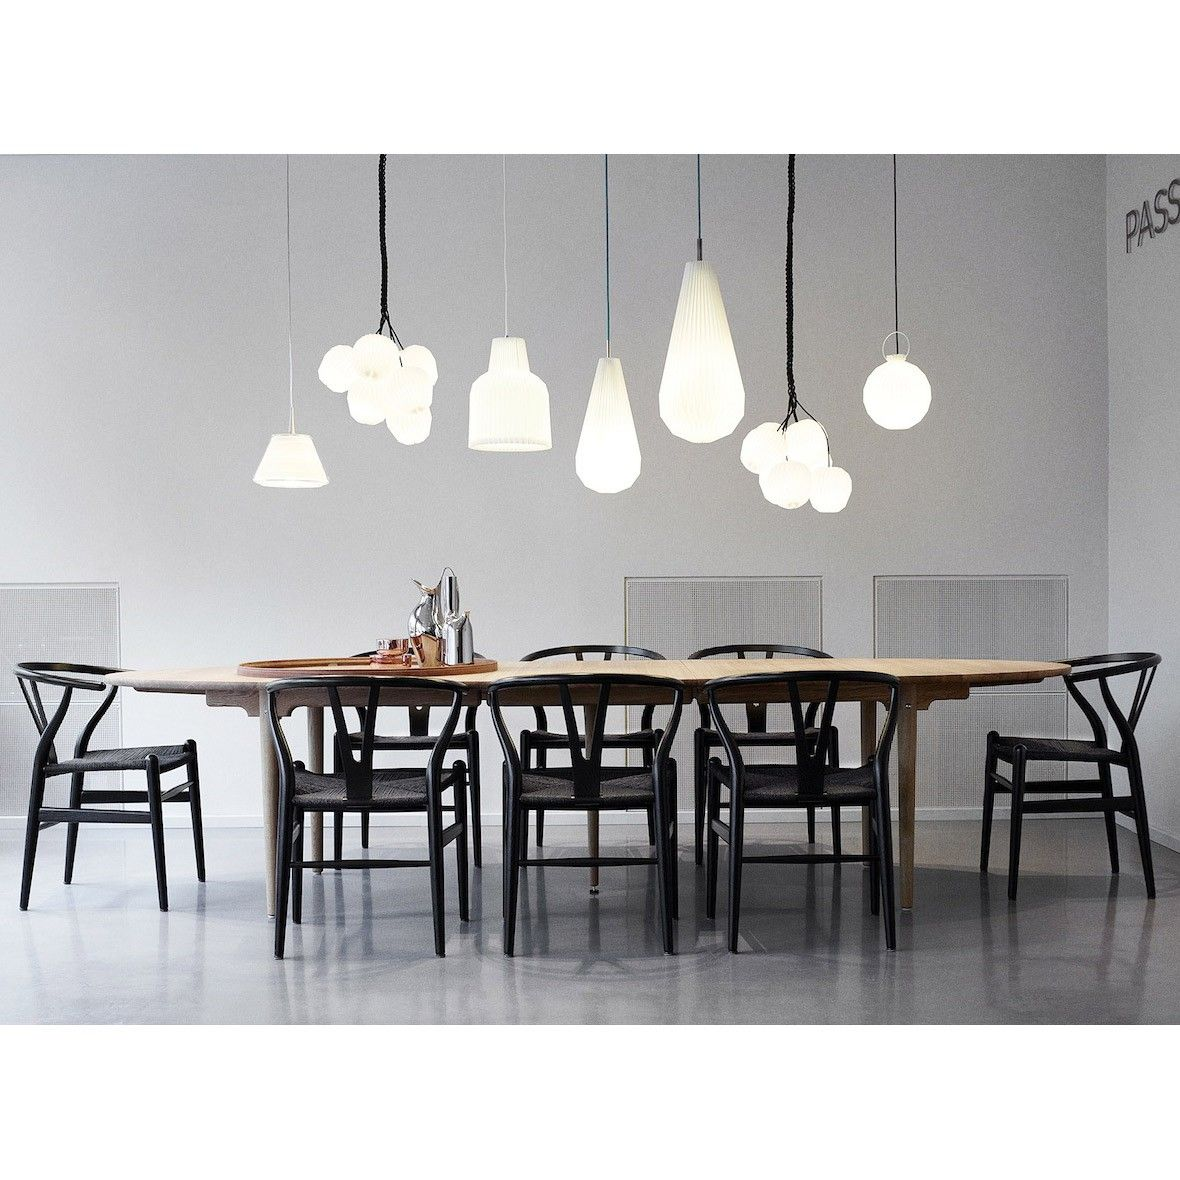 Ch24 wishbone chair in colour dining room lighting